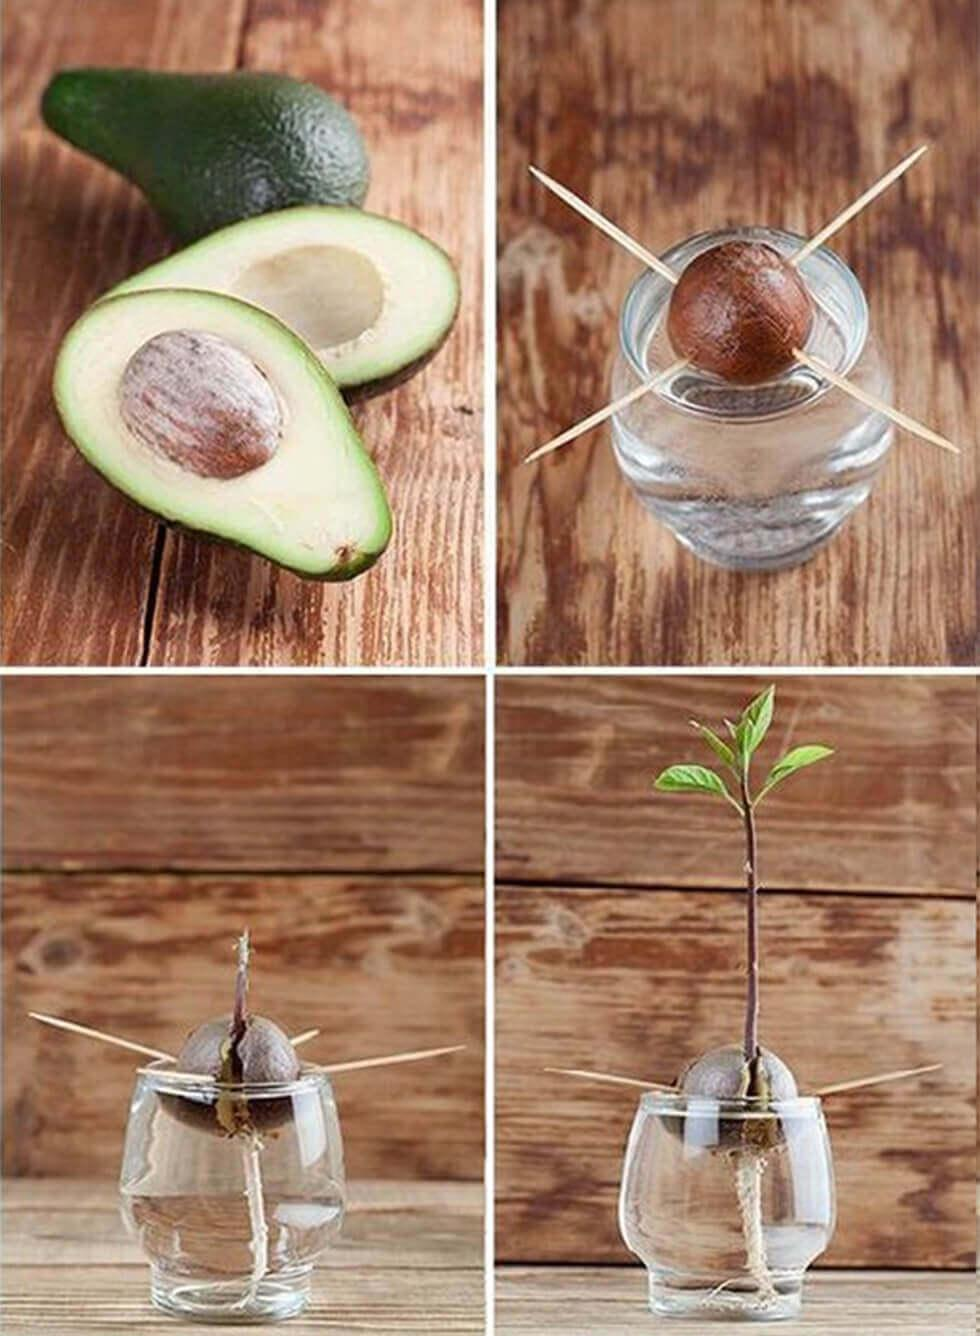 Process photos of re-sprouting avocado from a seed.